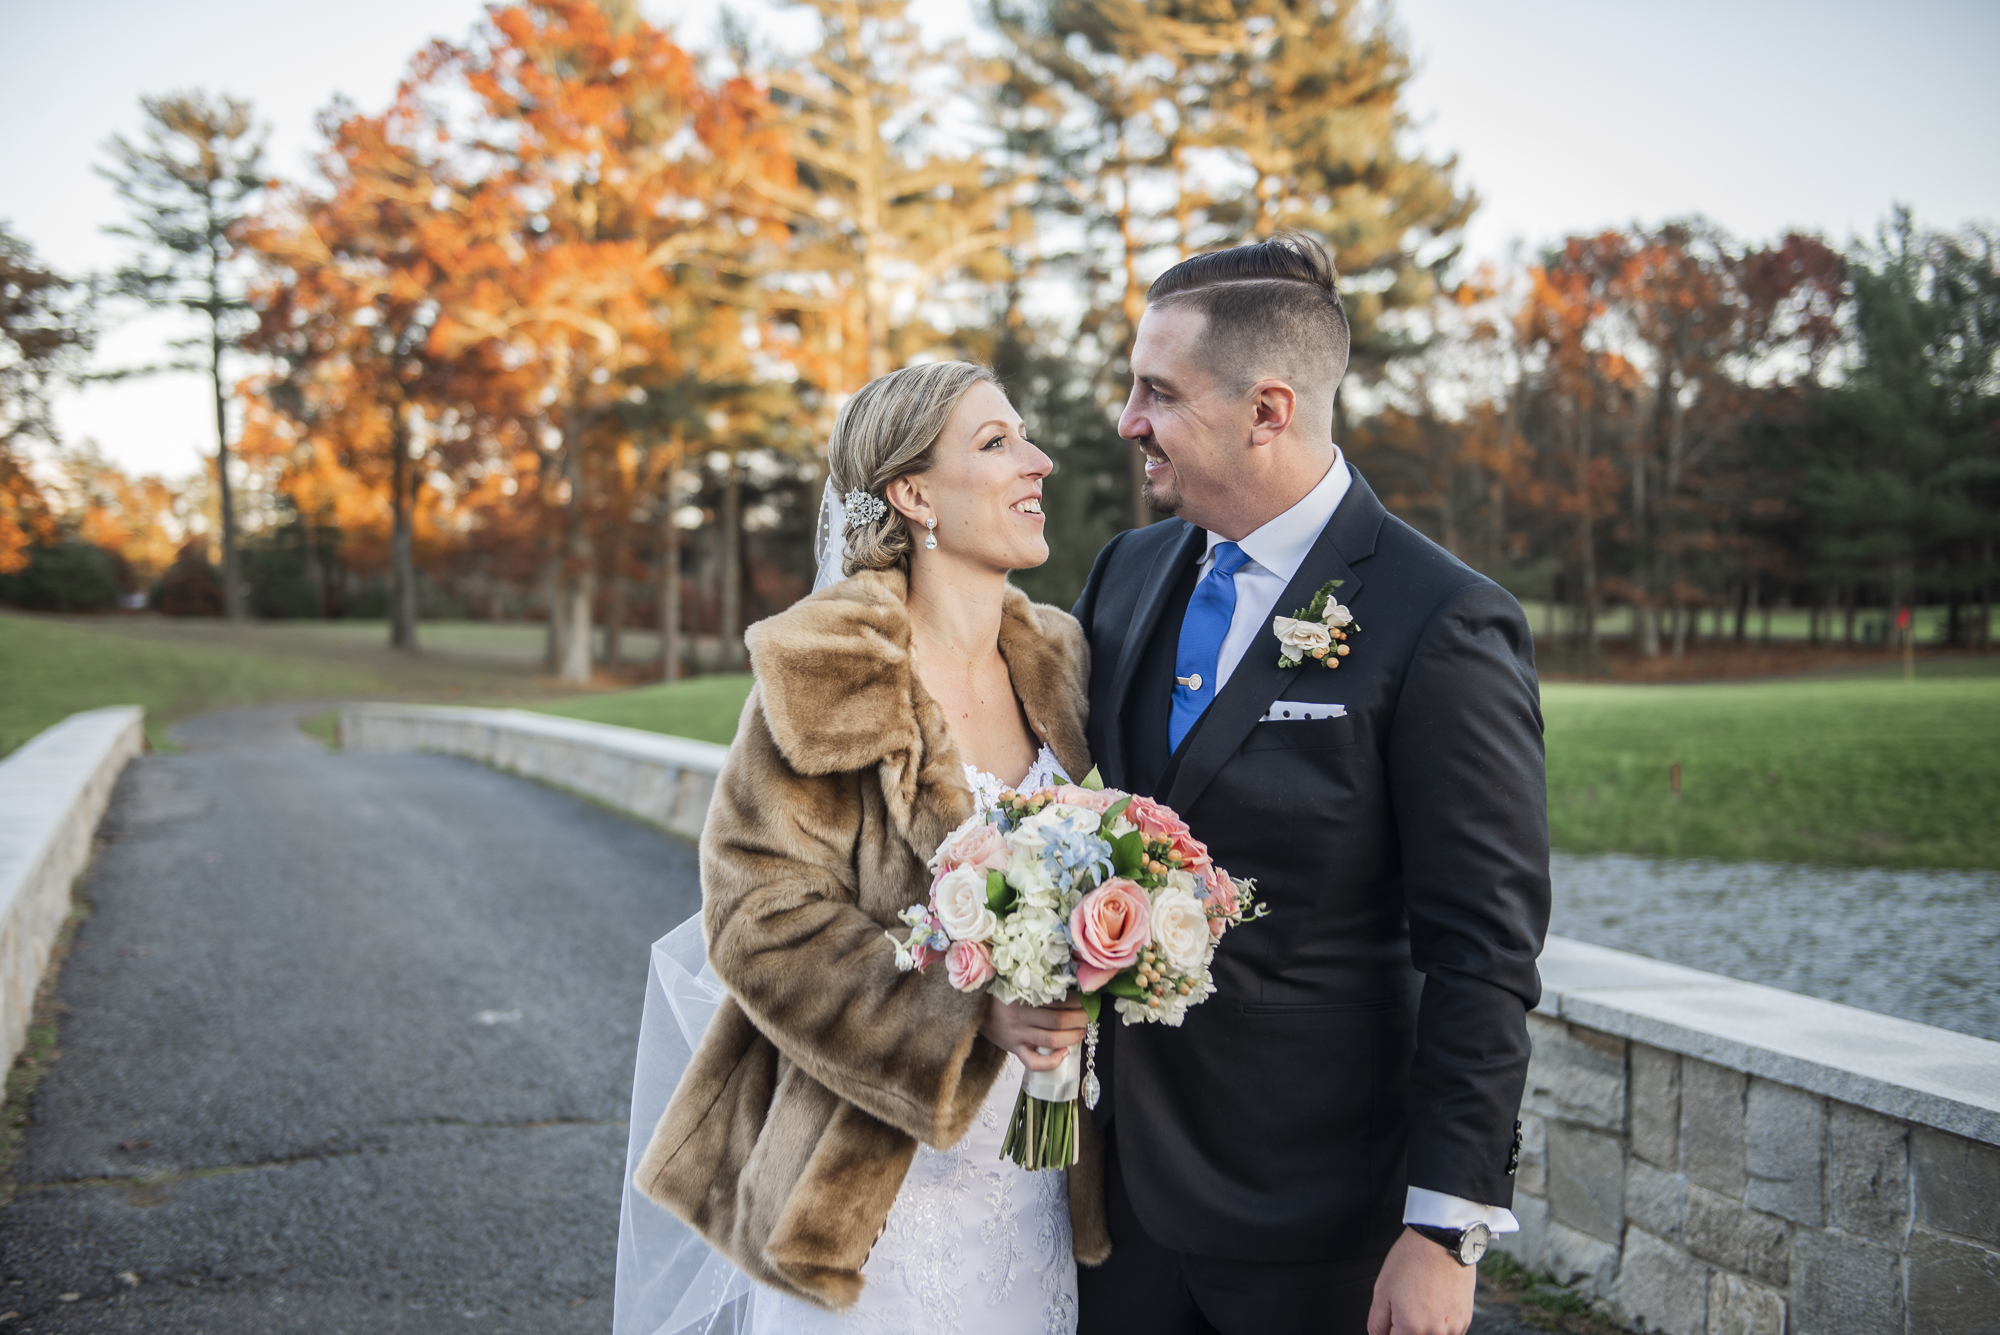 Meghan and Joseph-20181110-3128-RT-2000.jpg